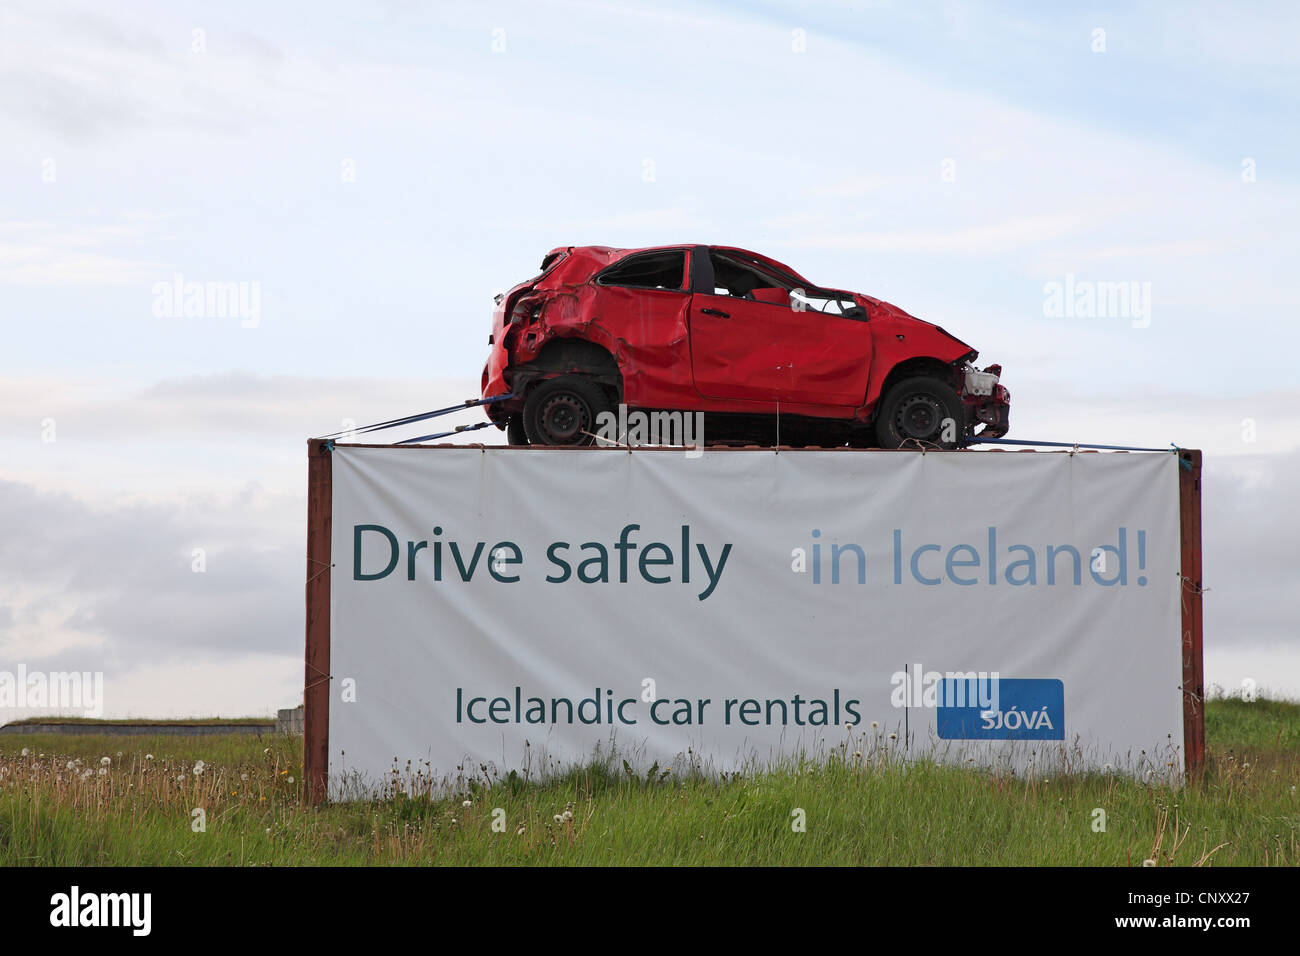 monument at a roadside with a junk car and the warning to drive carefully, Iceland, Gardur - Stock Image